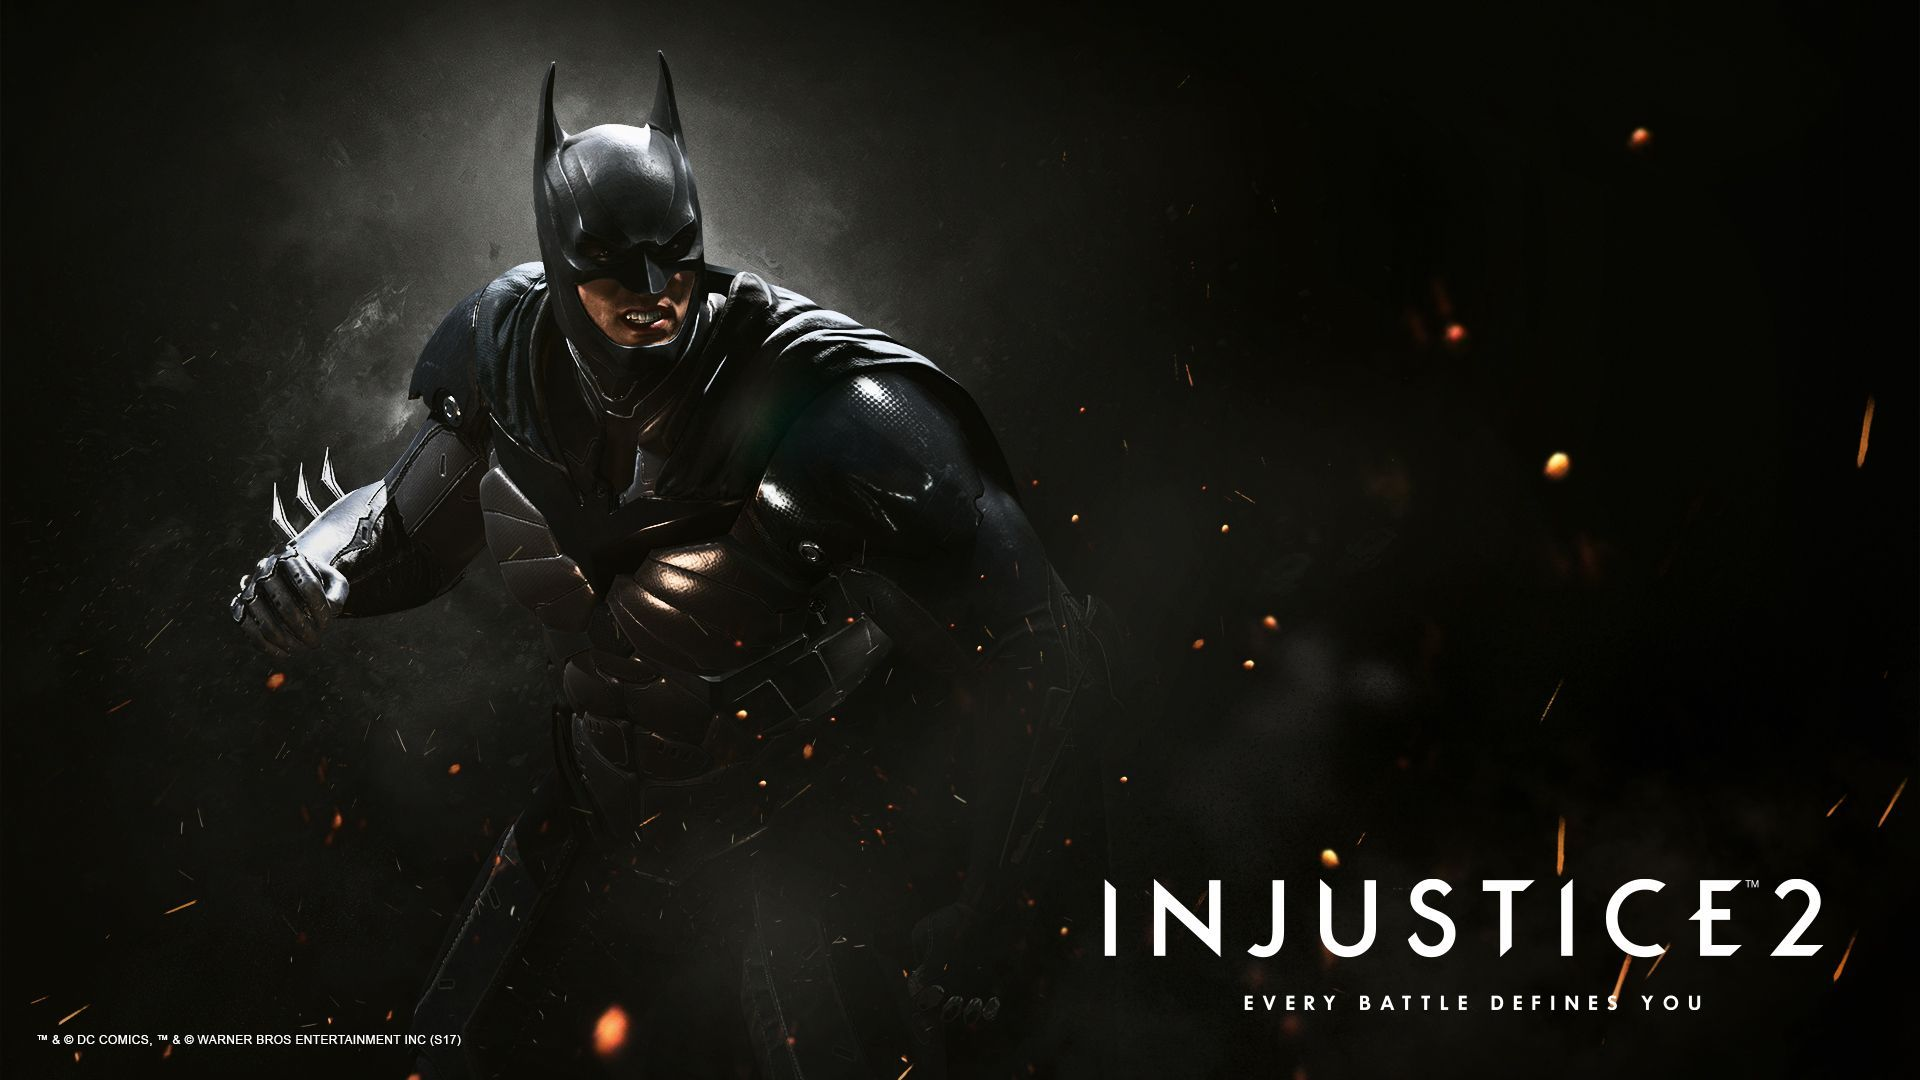 Wallpapers Injustice Injustice 2 Batman Injustice Batman